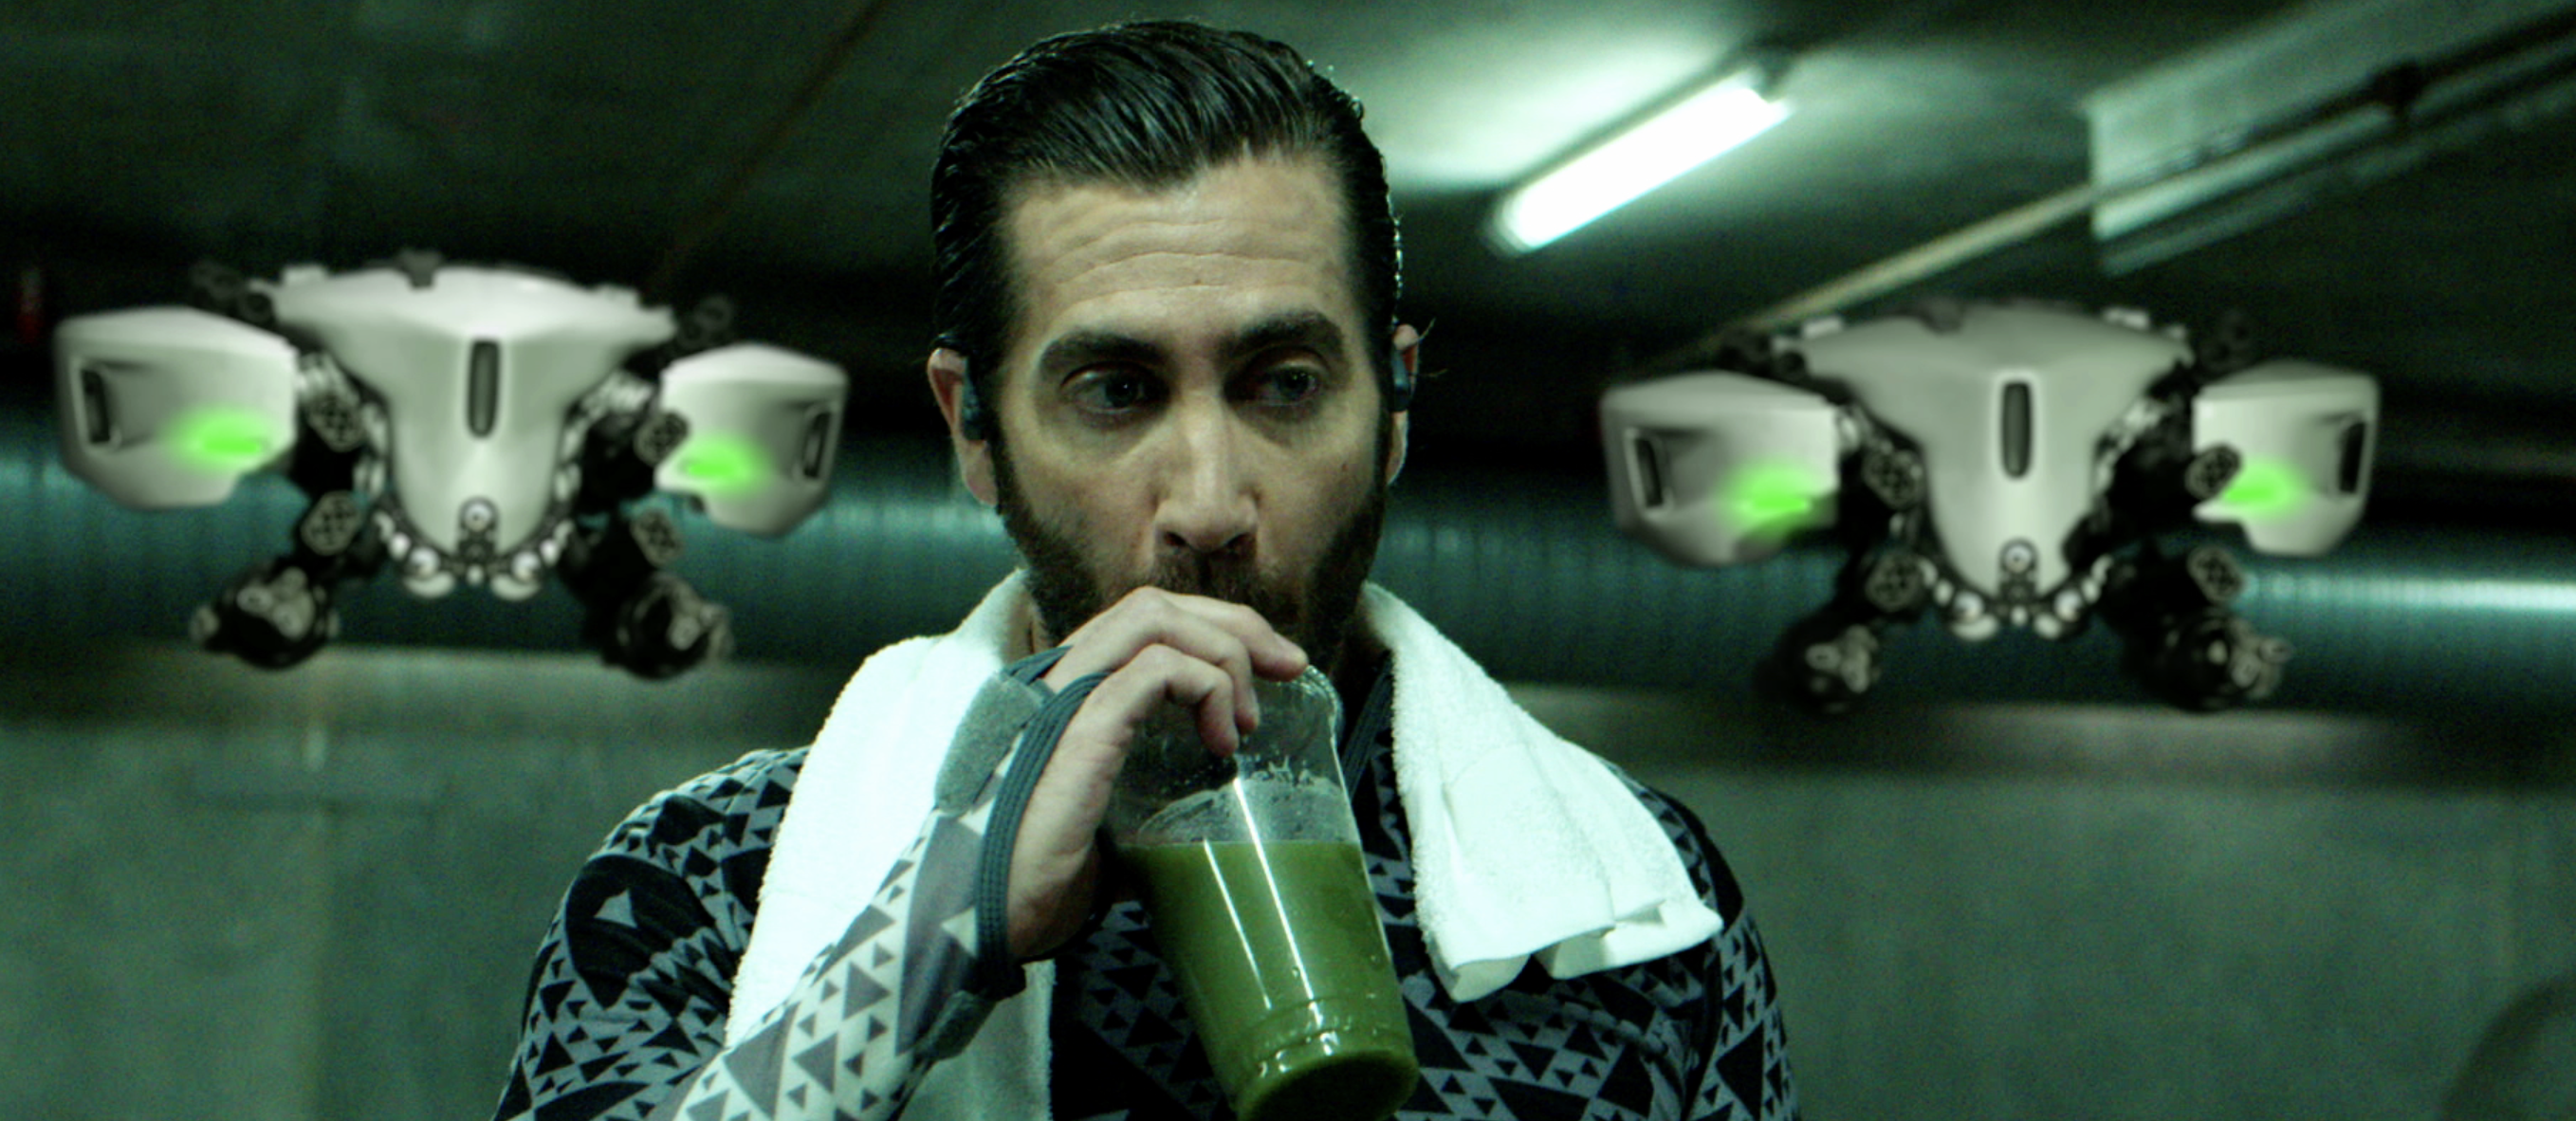 Mysterio sips some green juice as droids hover behind him